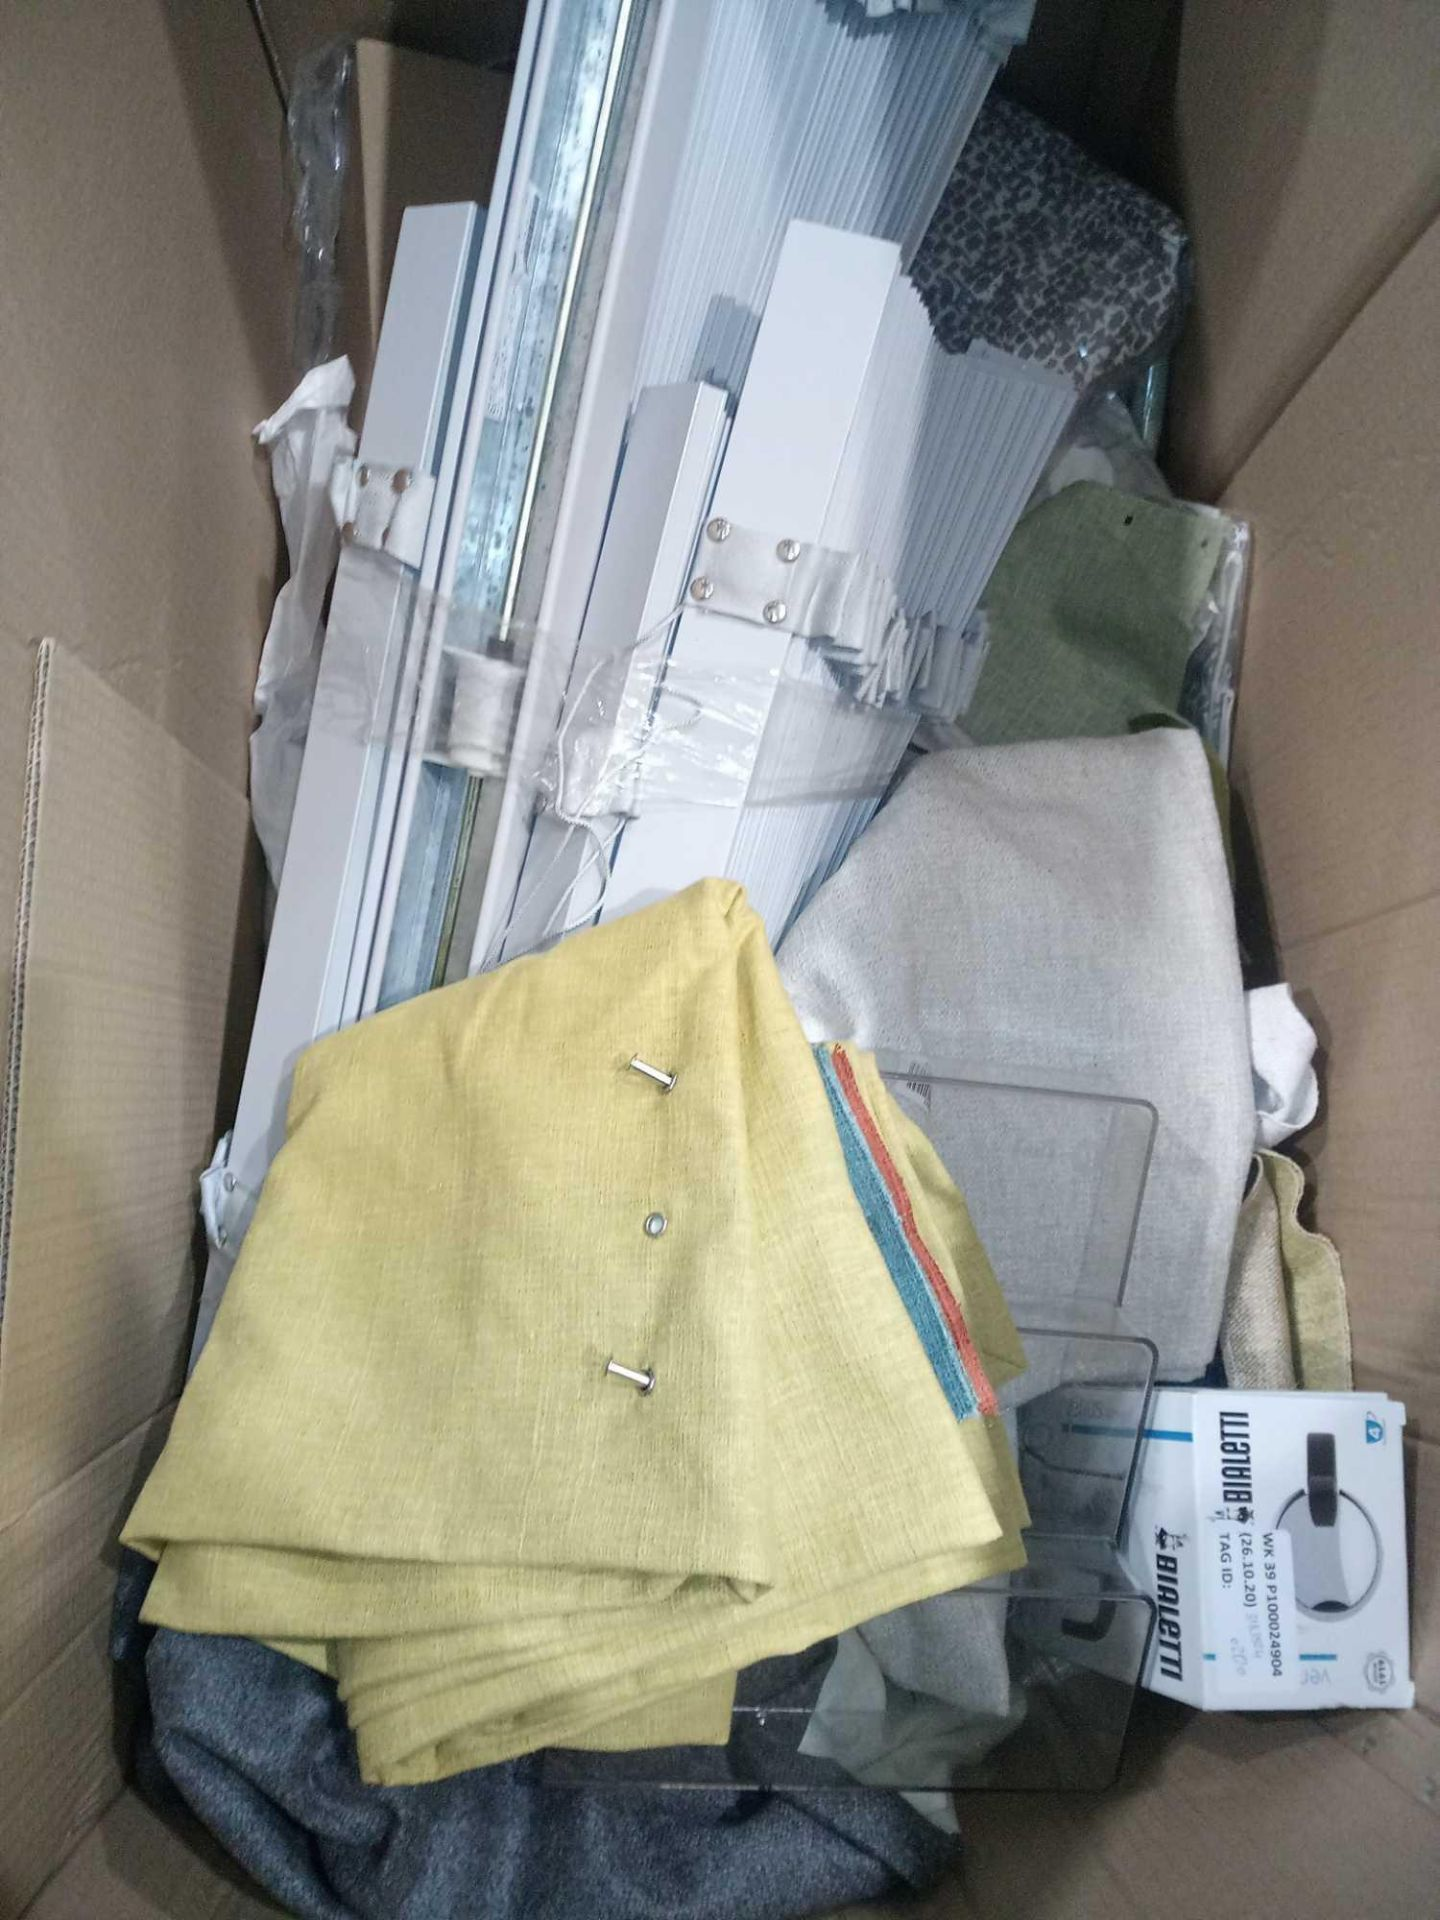 Pallet To Contain A Large Assortment Of John Lewis Blinds And Curtains To Include Grey Curtains, - Image 2 of 5